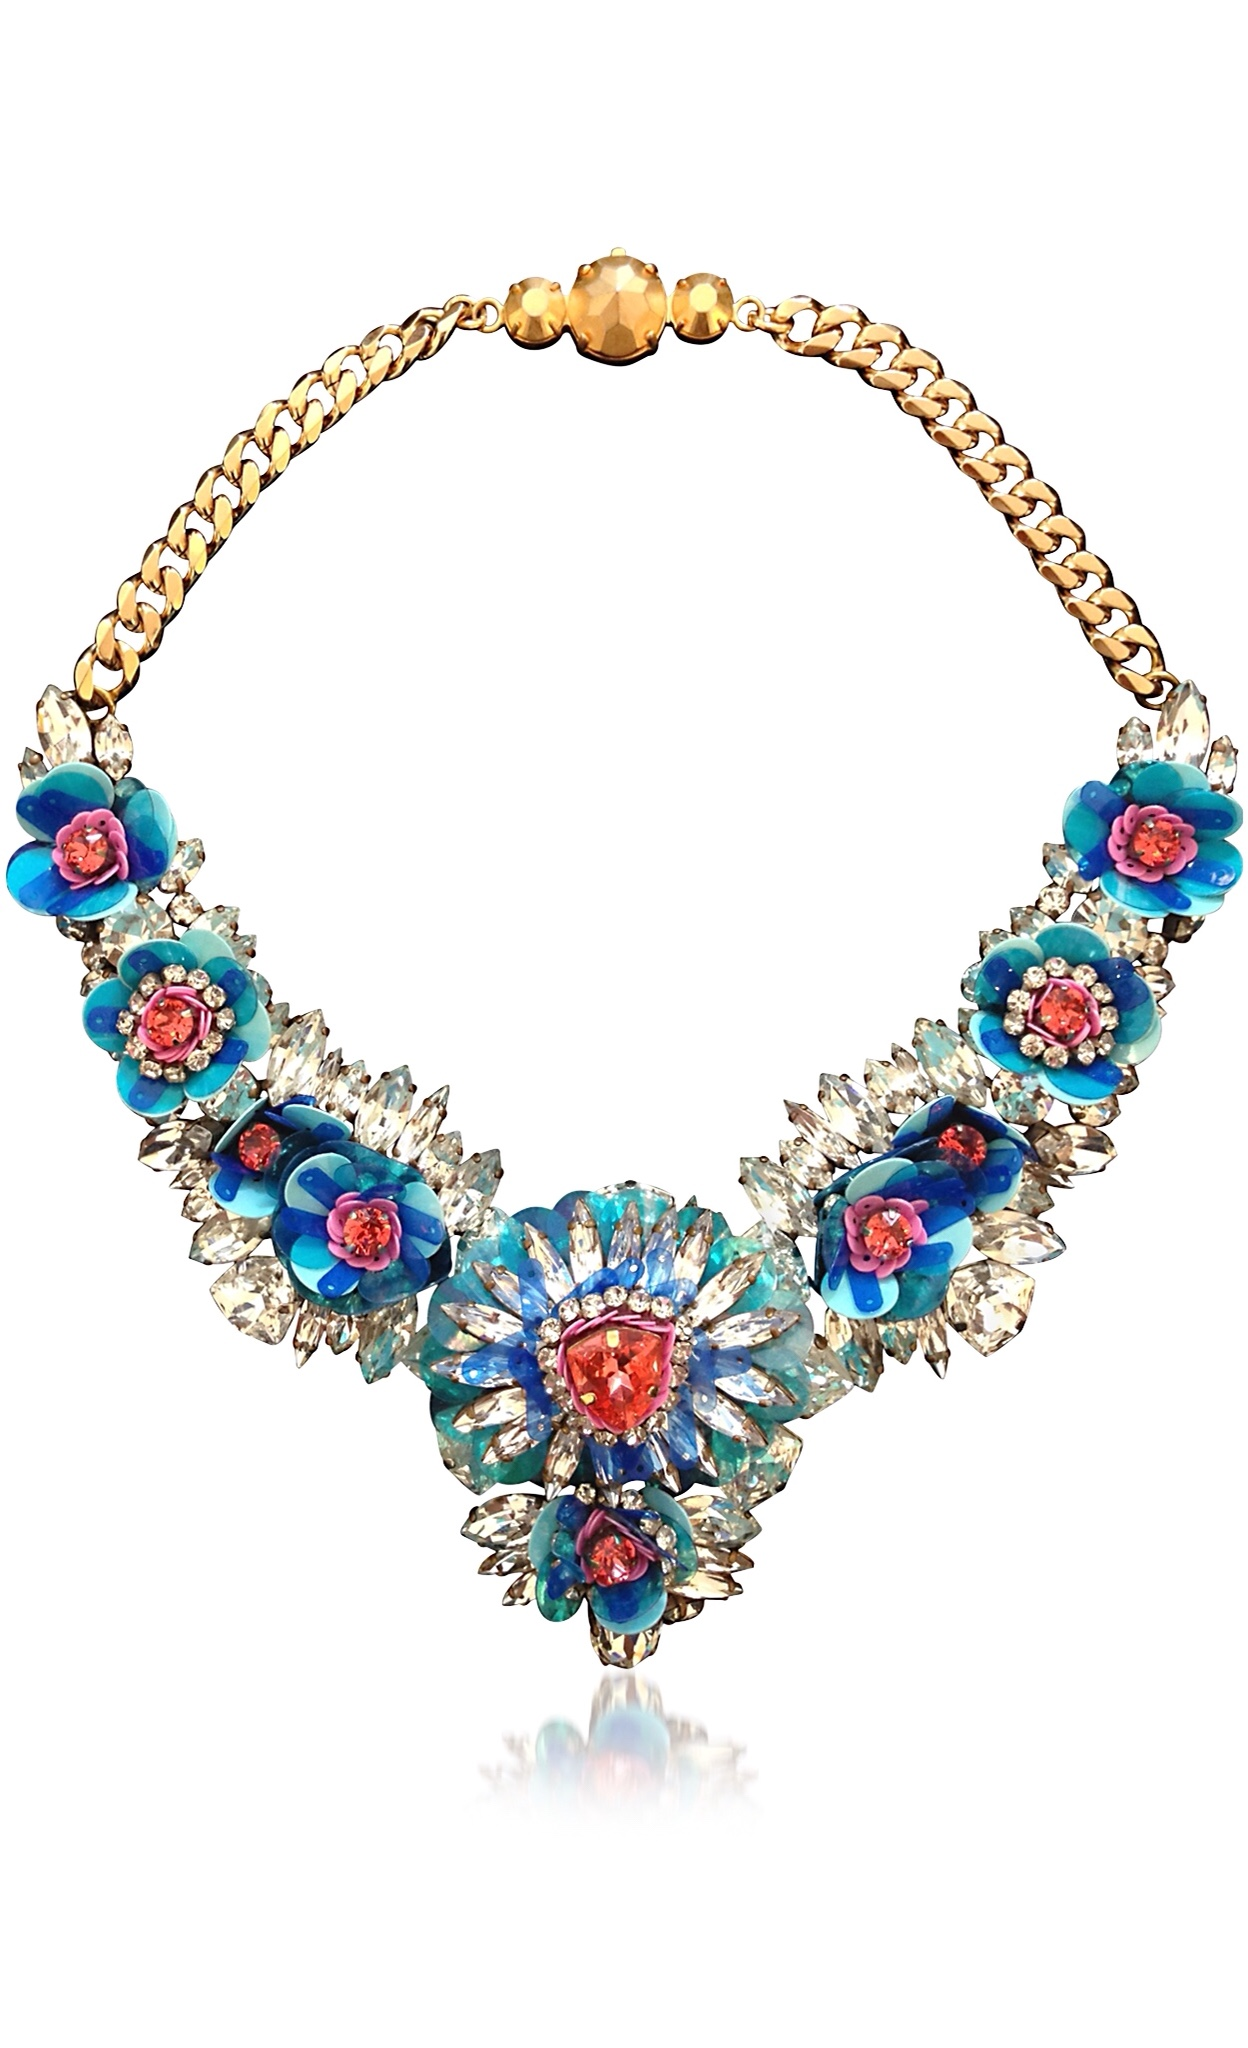 {Spring Statement Jewelry 2015} Blue Apolonia Flower Necklace w/Crystals and Sequins by SHOUROUK